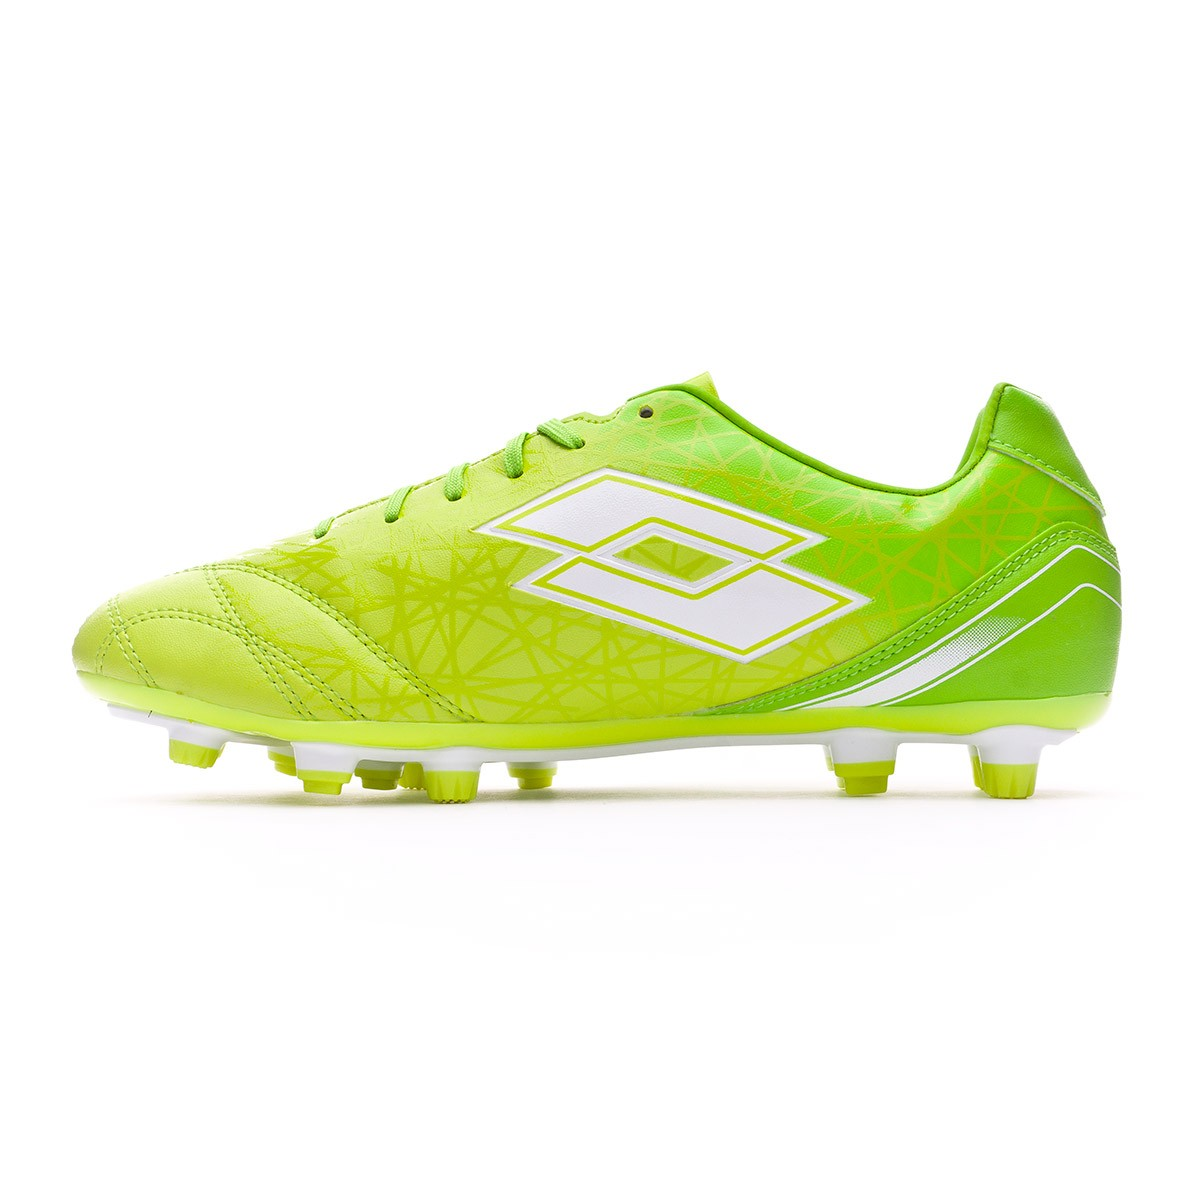 separation shoes d5f25 92f16 Football Boots Lotto Zhero Gravity 700 X FG Green-White - Football store  Fútbol Emotion